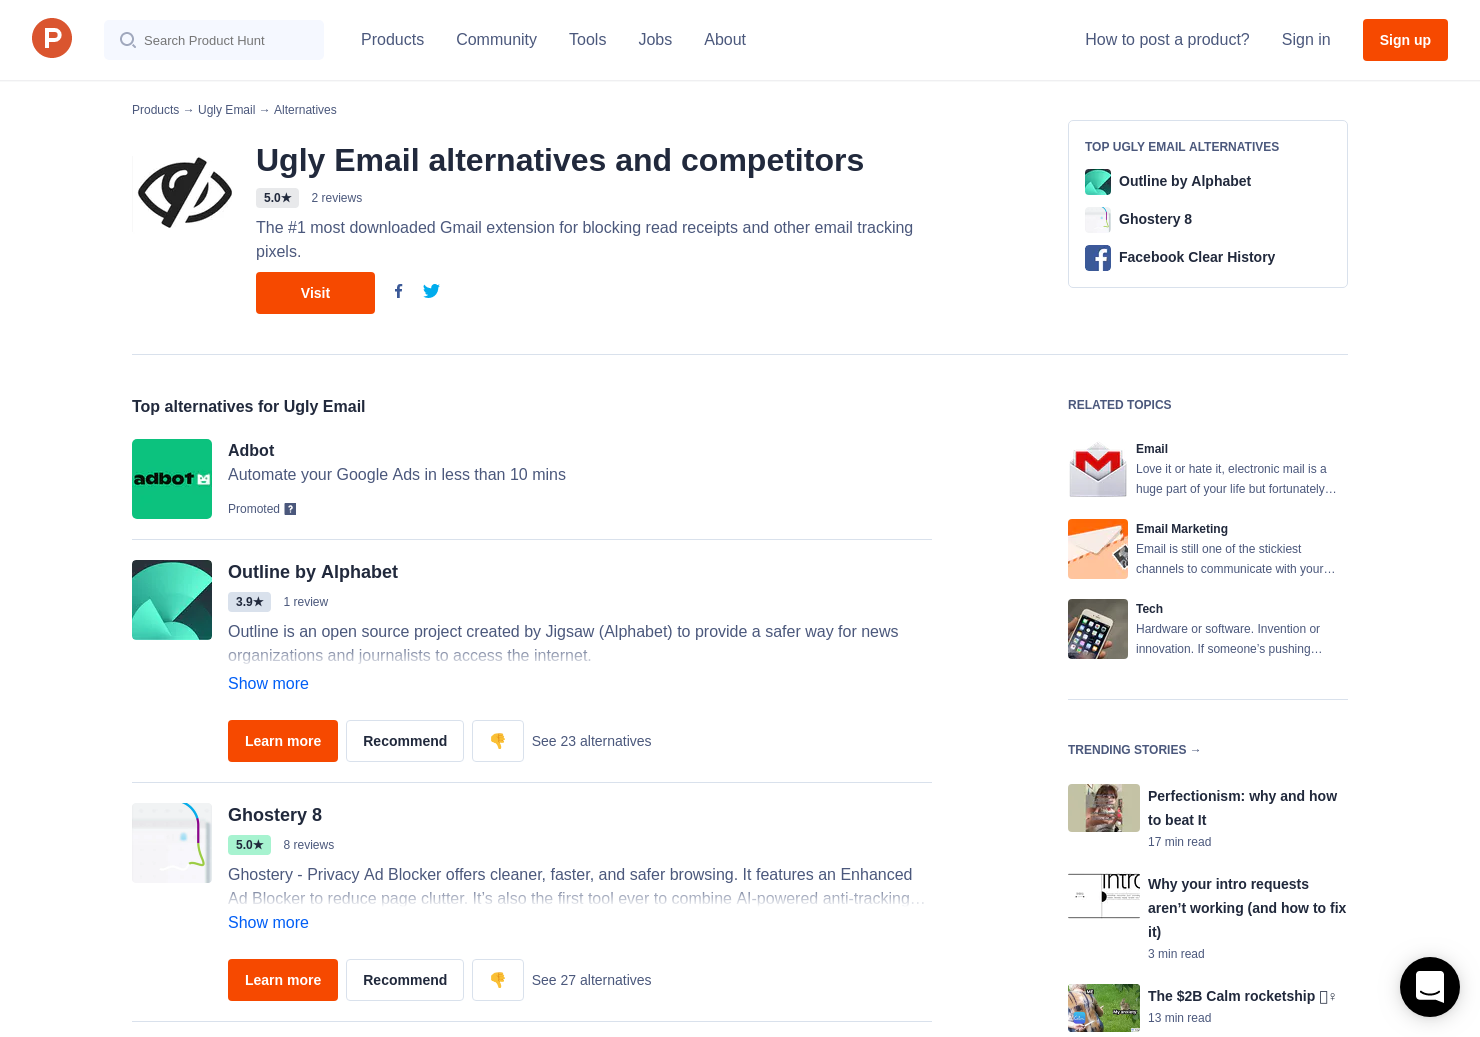 12 Alternatives to Ugly Email for FireFox | Product Hunt